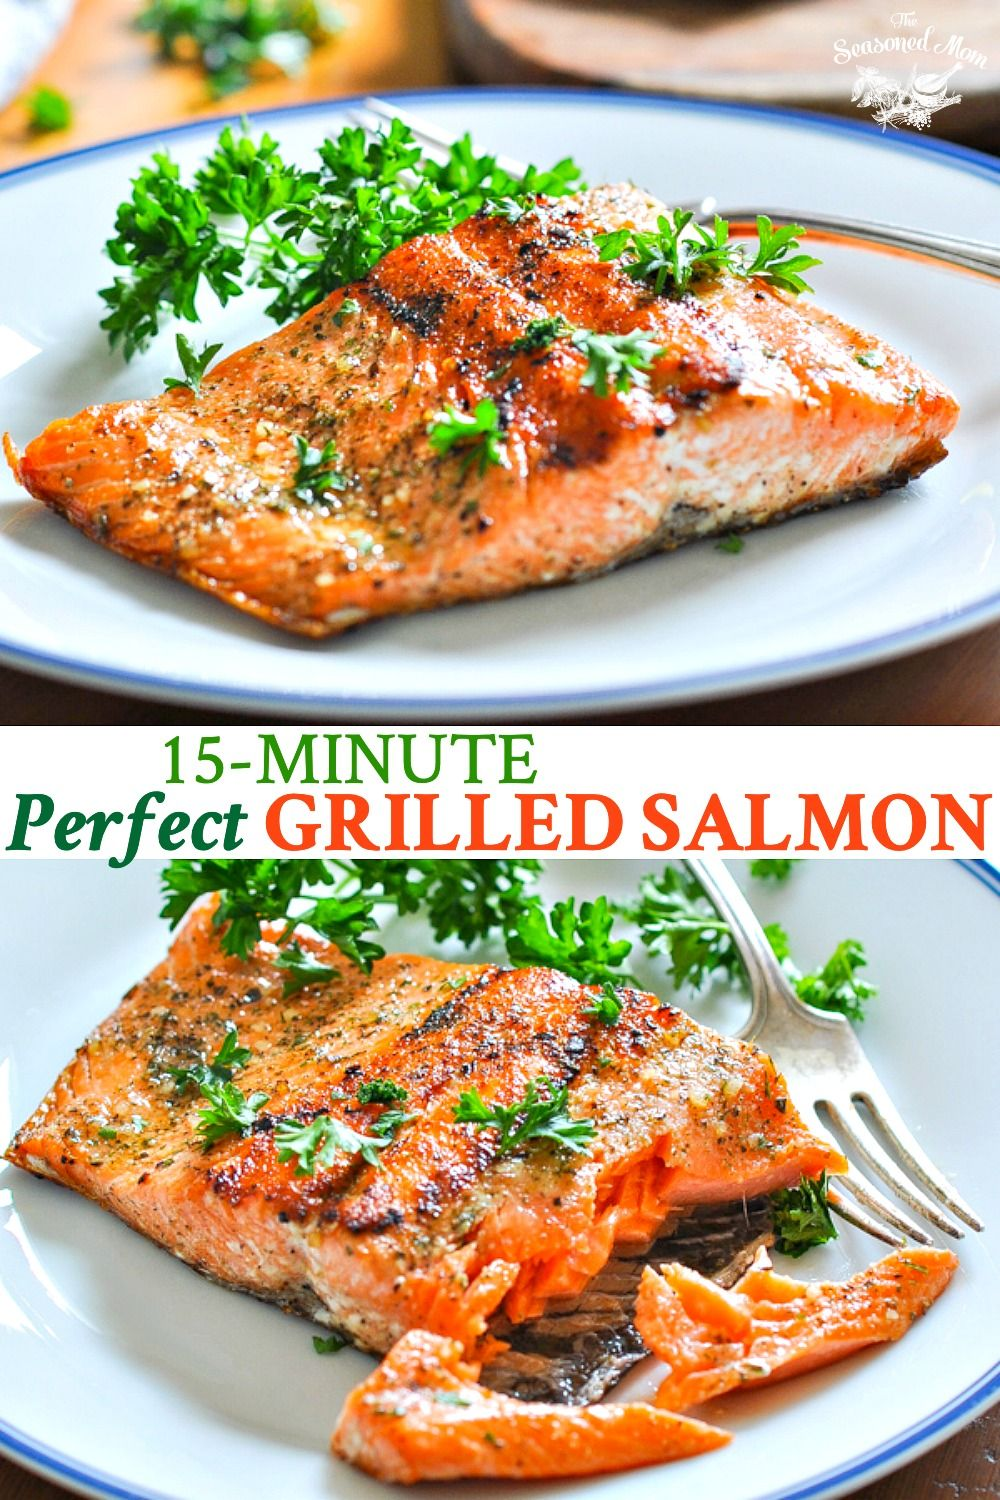 The Perfect 15-Minute Grilled Salmon images